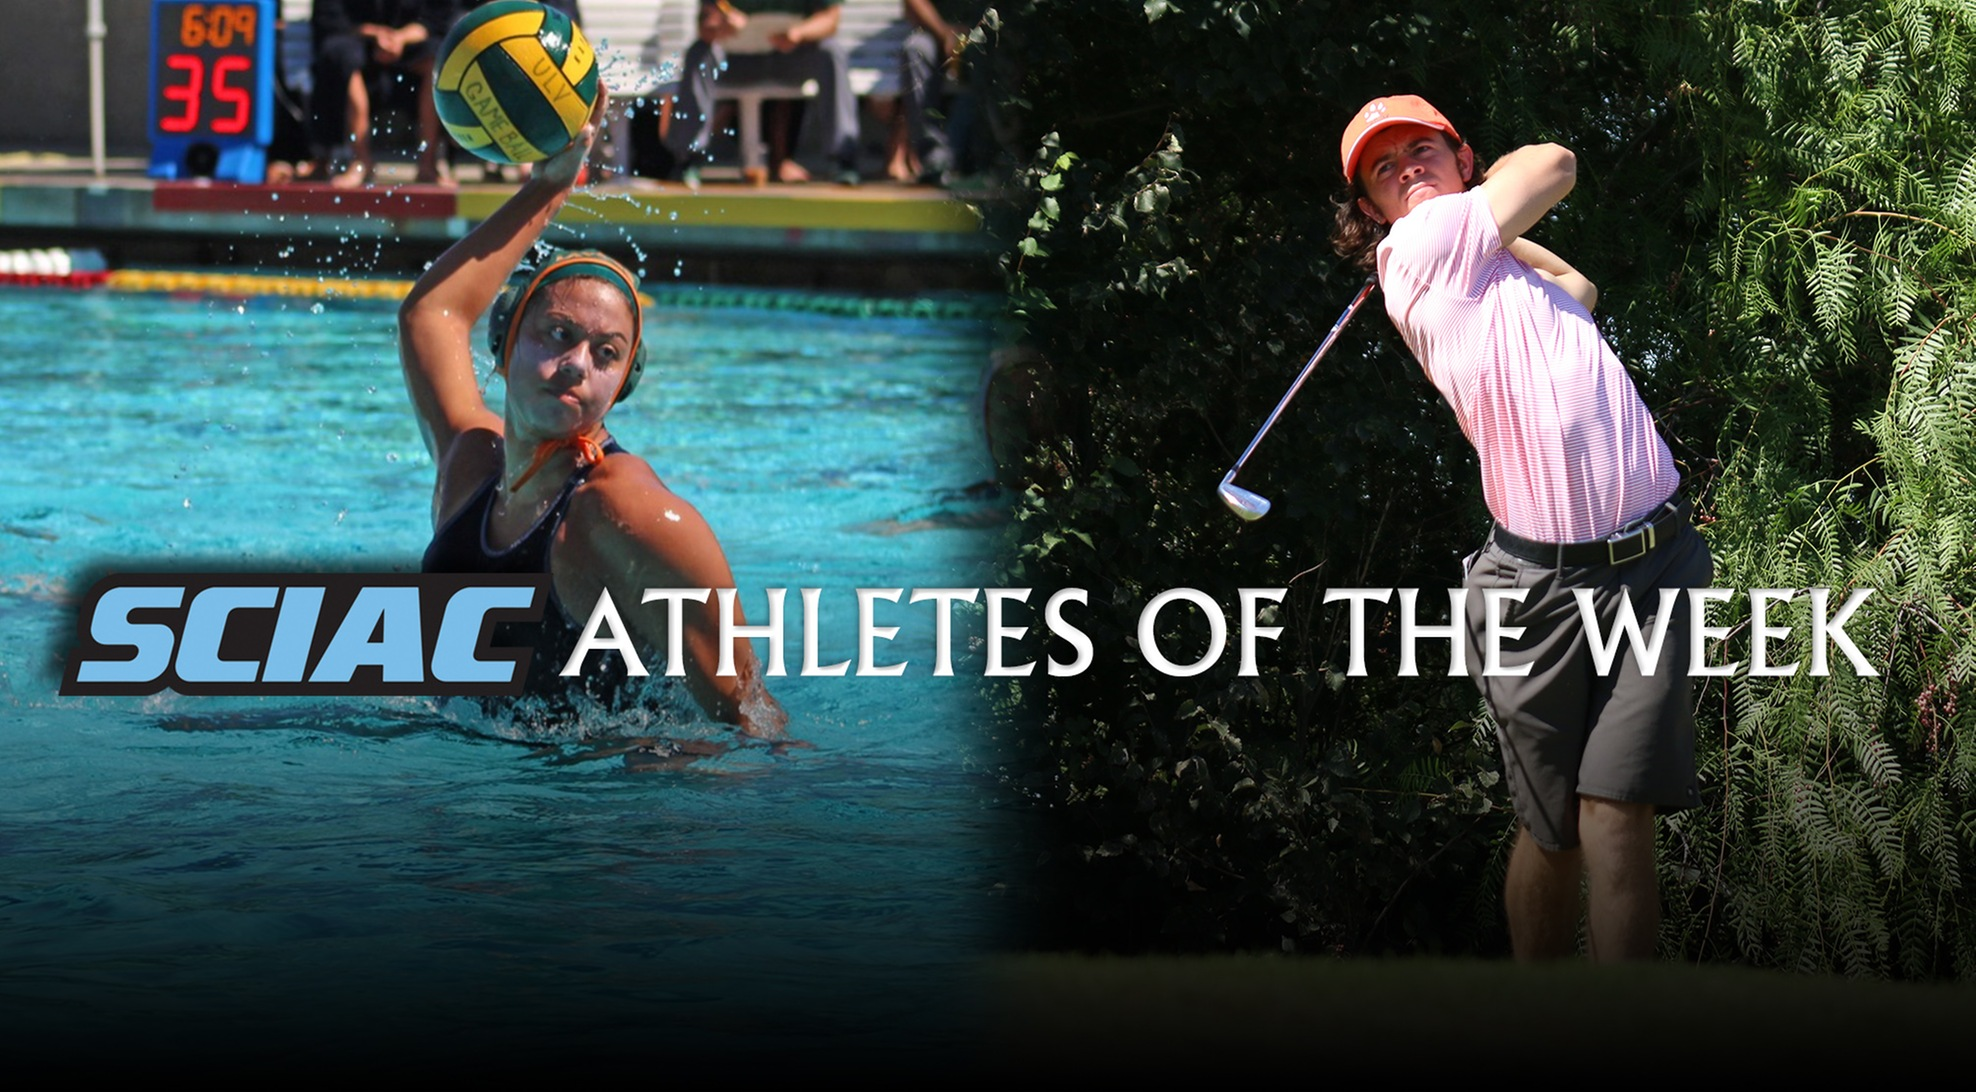 Davis, Kezman named SCIAC Athletes of the Week